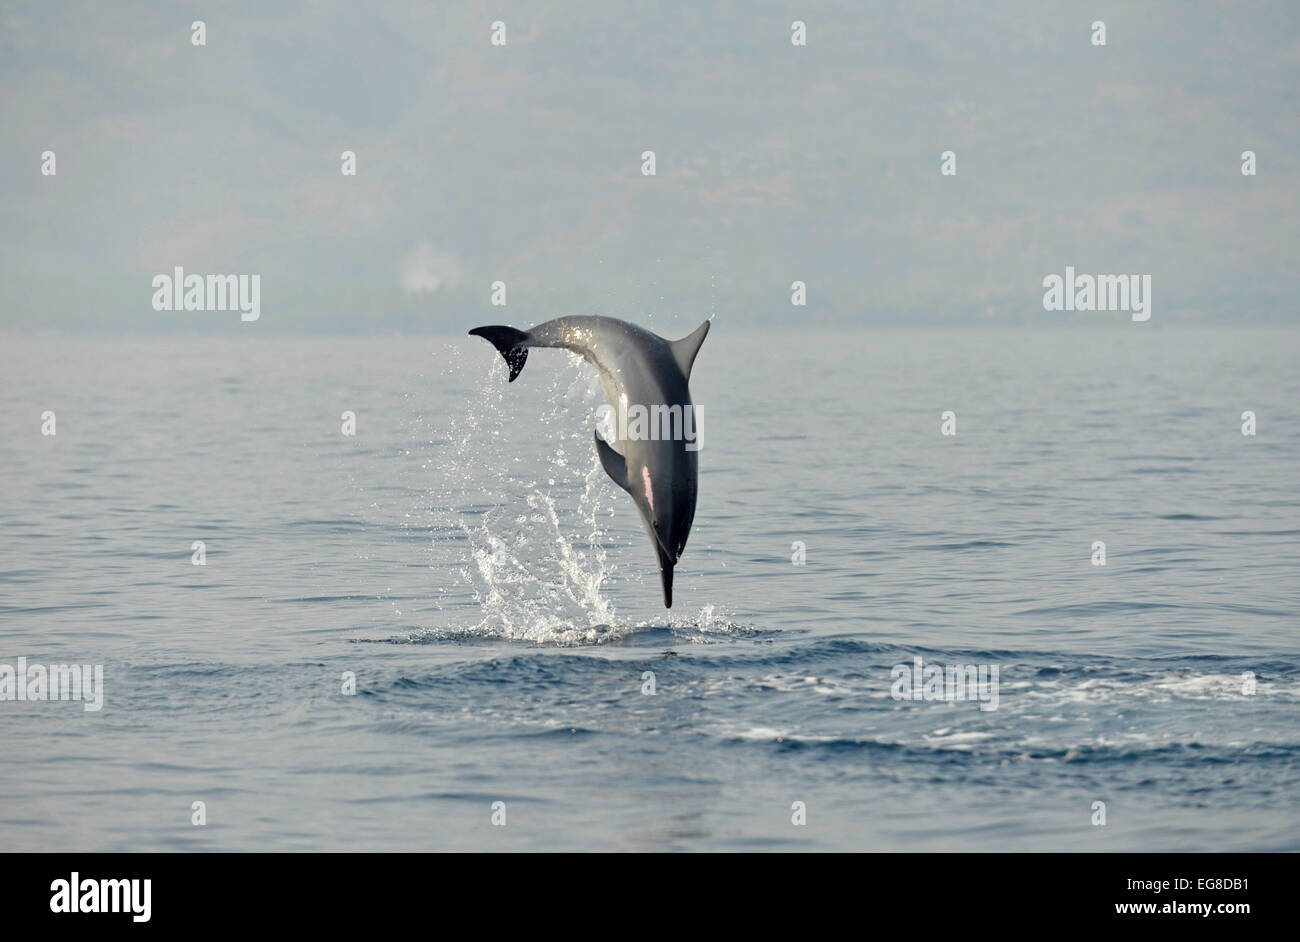 Spinner Dolphin (Stenella longirostris) leaping from the sea, Bali, Indonesia, October Stock Photo